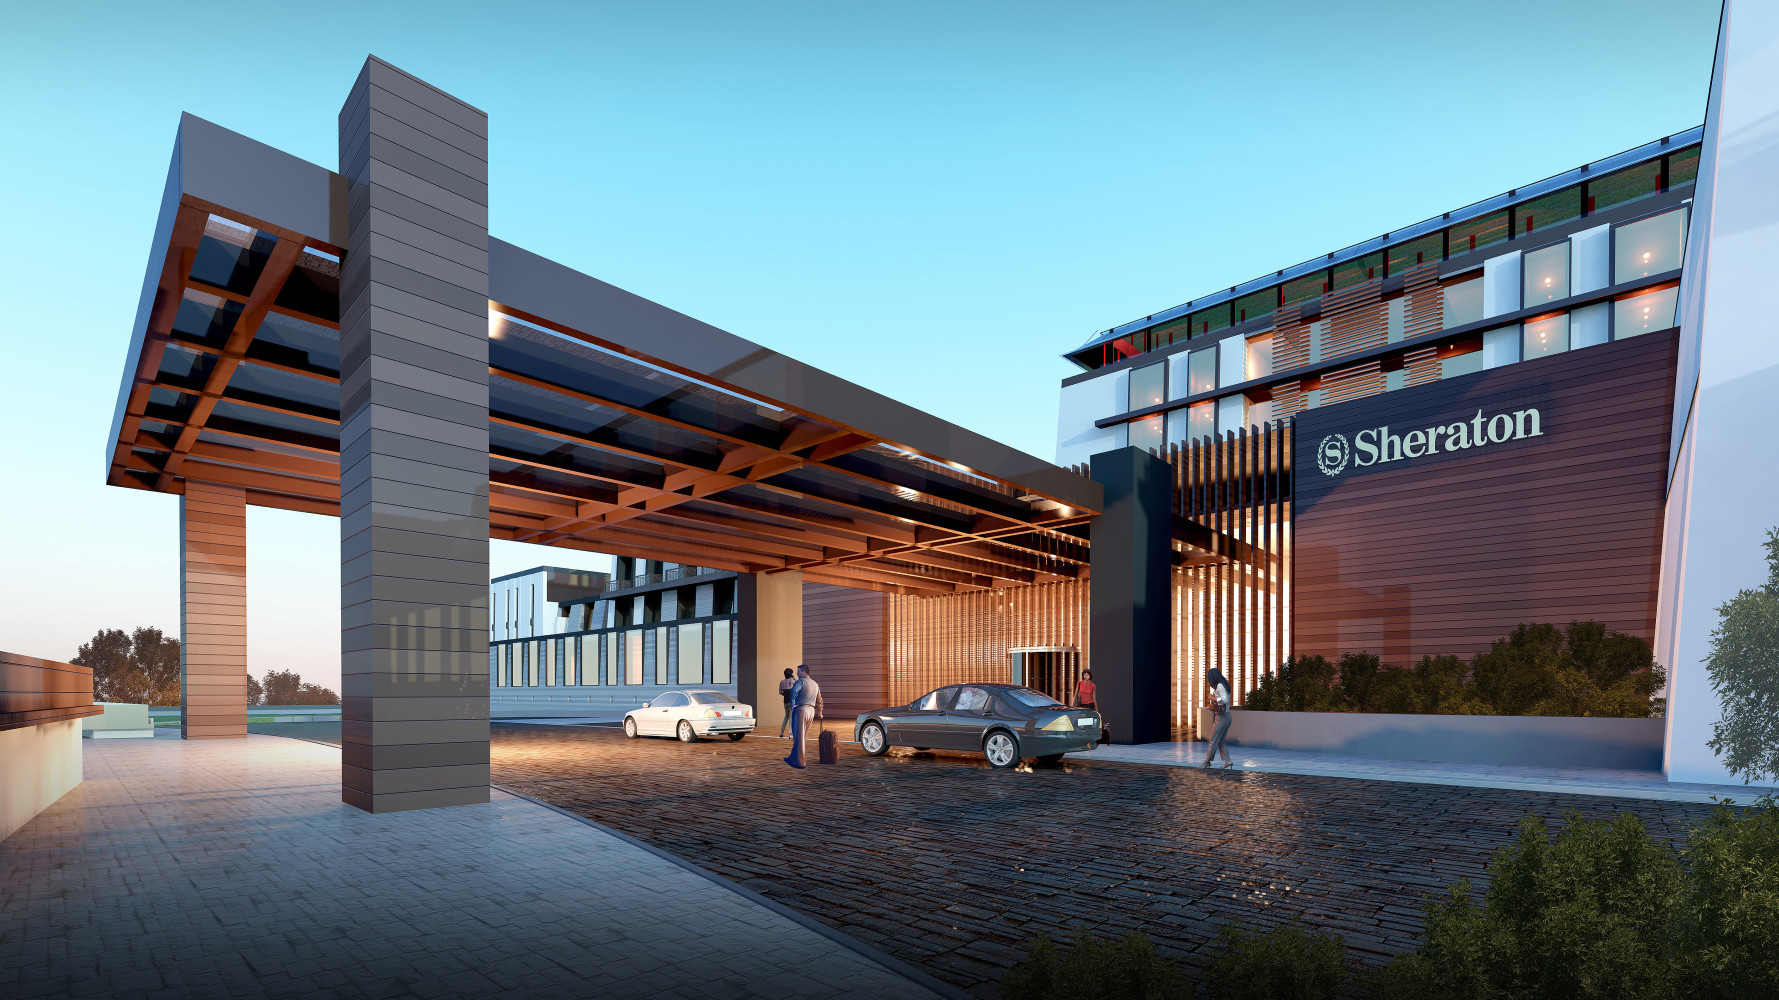 Sheraton Diqing Resort, by Archilier Architecture